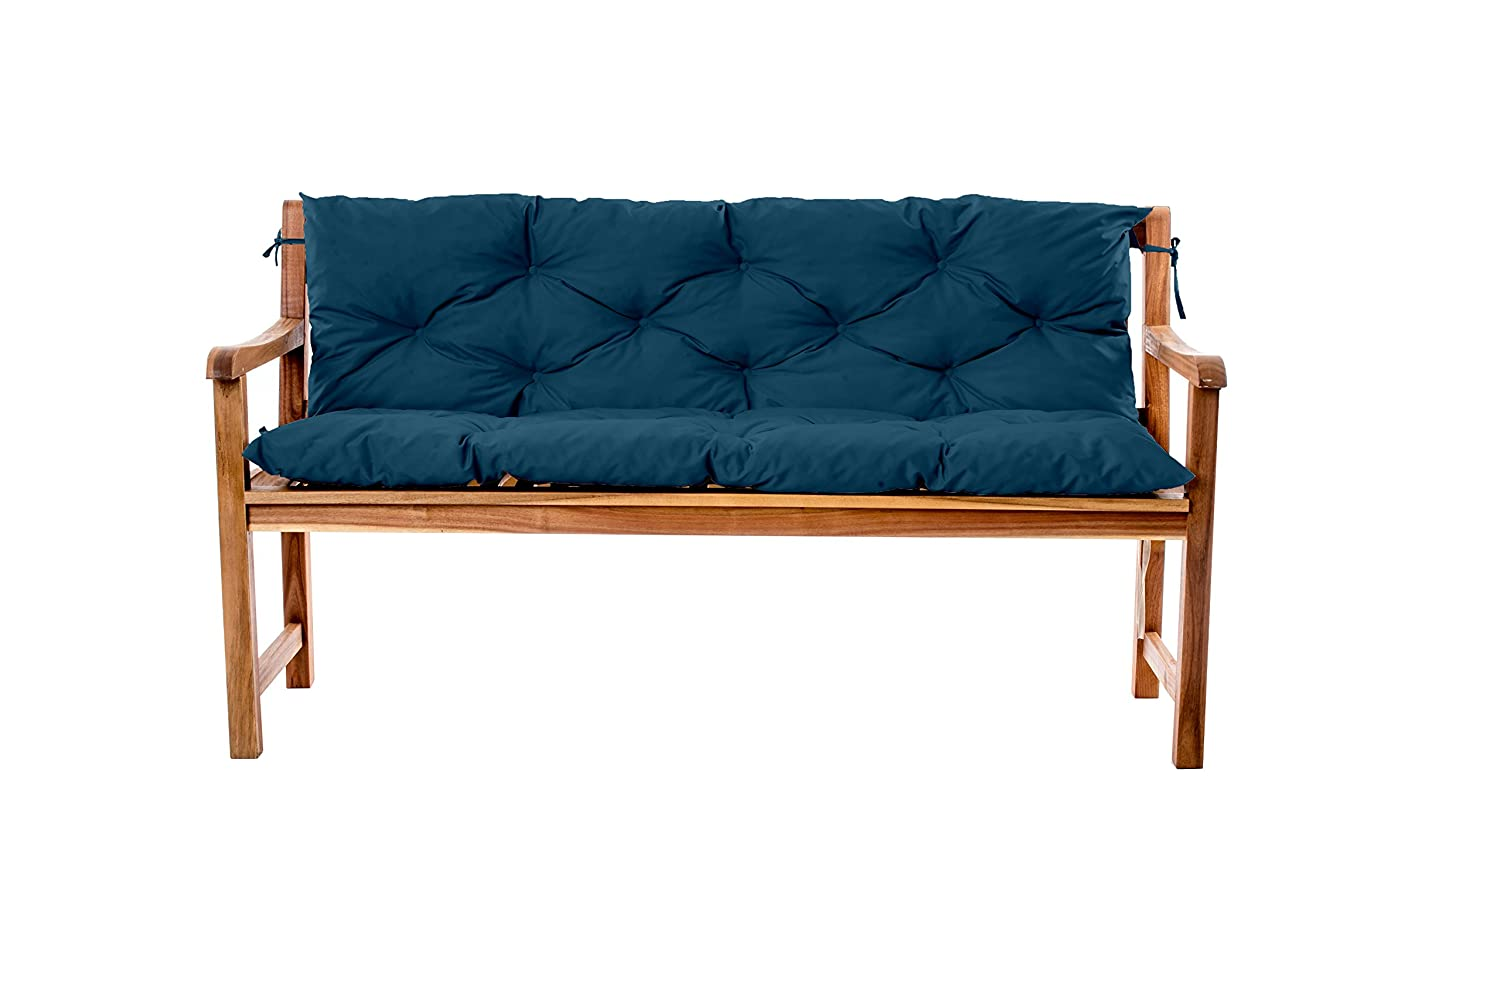 Gardenista Water Resistant Outdoor Garden 3 Seater Bench Backrest Cushion (Moroccan Blue), L150cm x D50cm x H50cm Approximate. Made in the UK. Tufted Cushions Collection